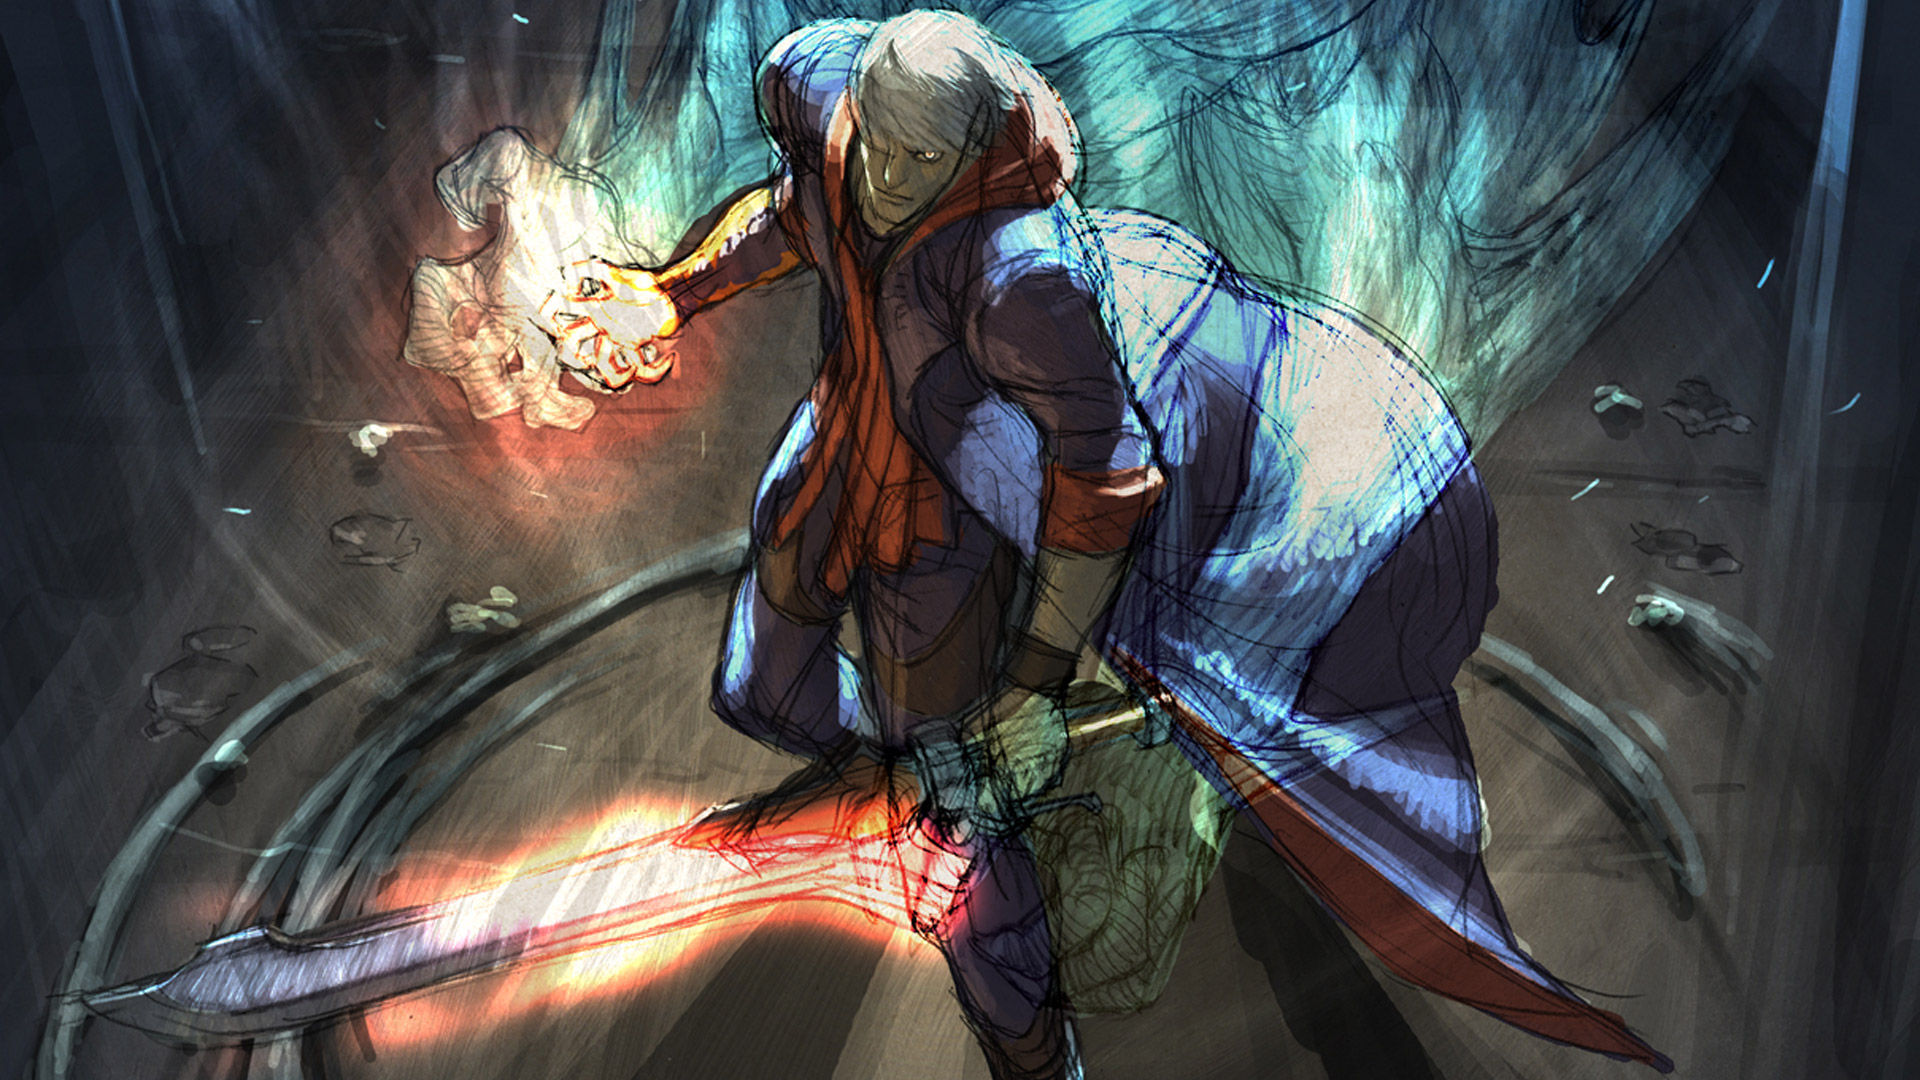 Devil May Cry 4 Wallpaper in 1920x1080